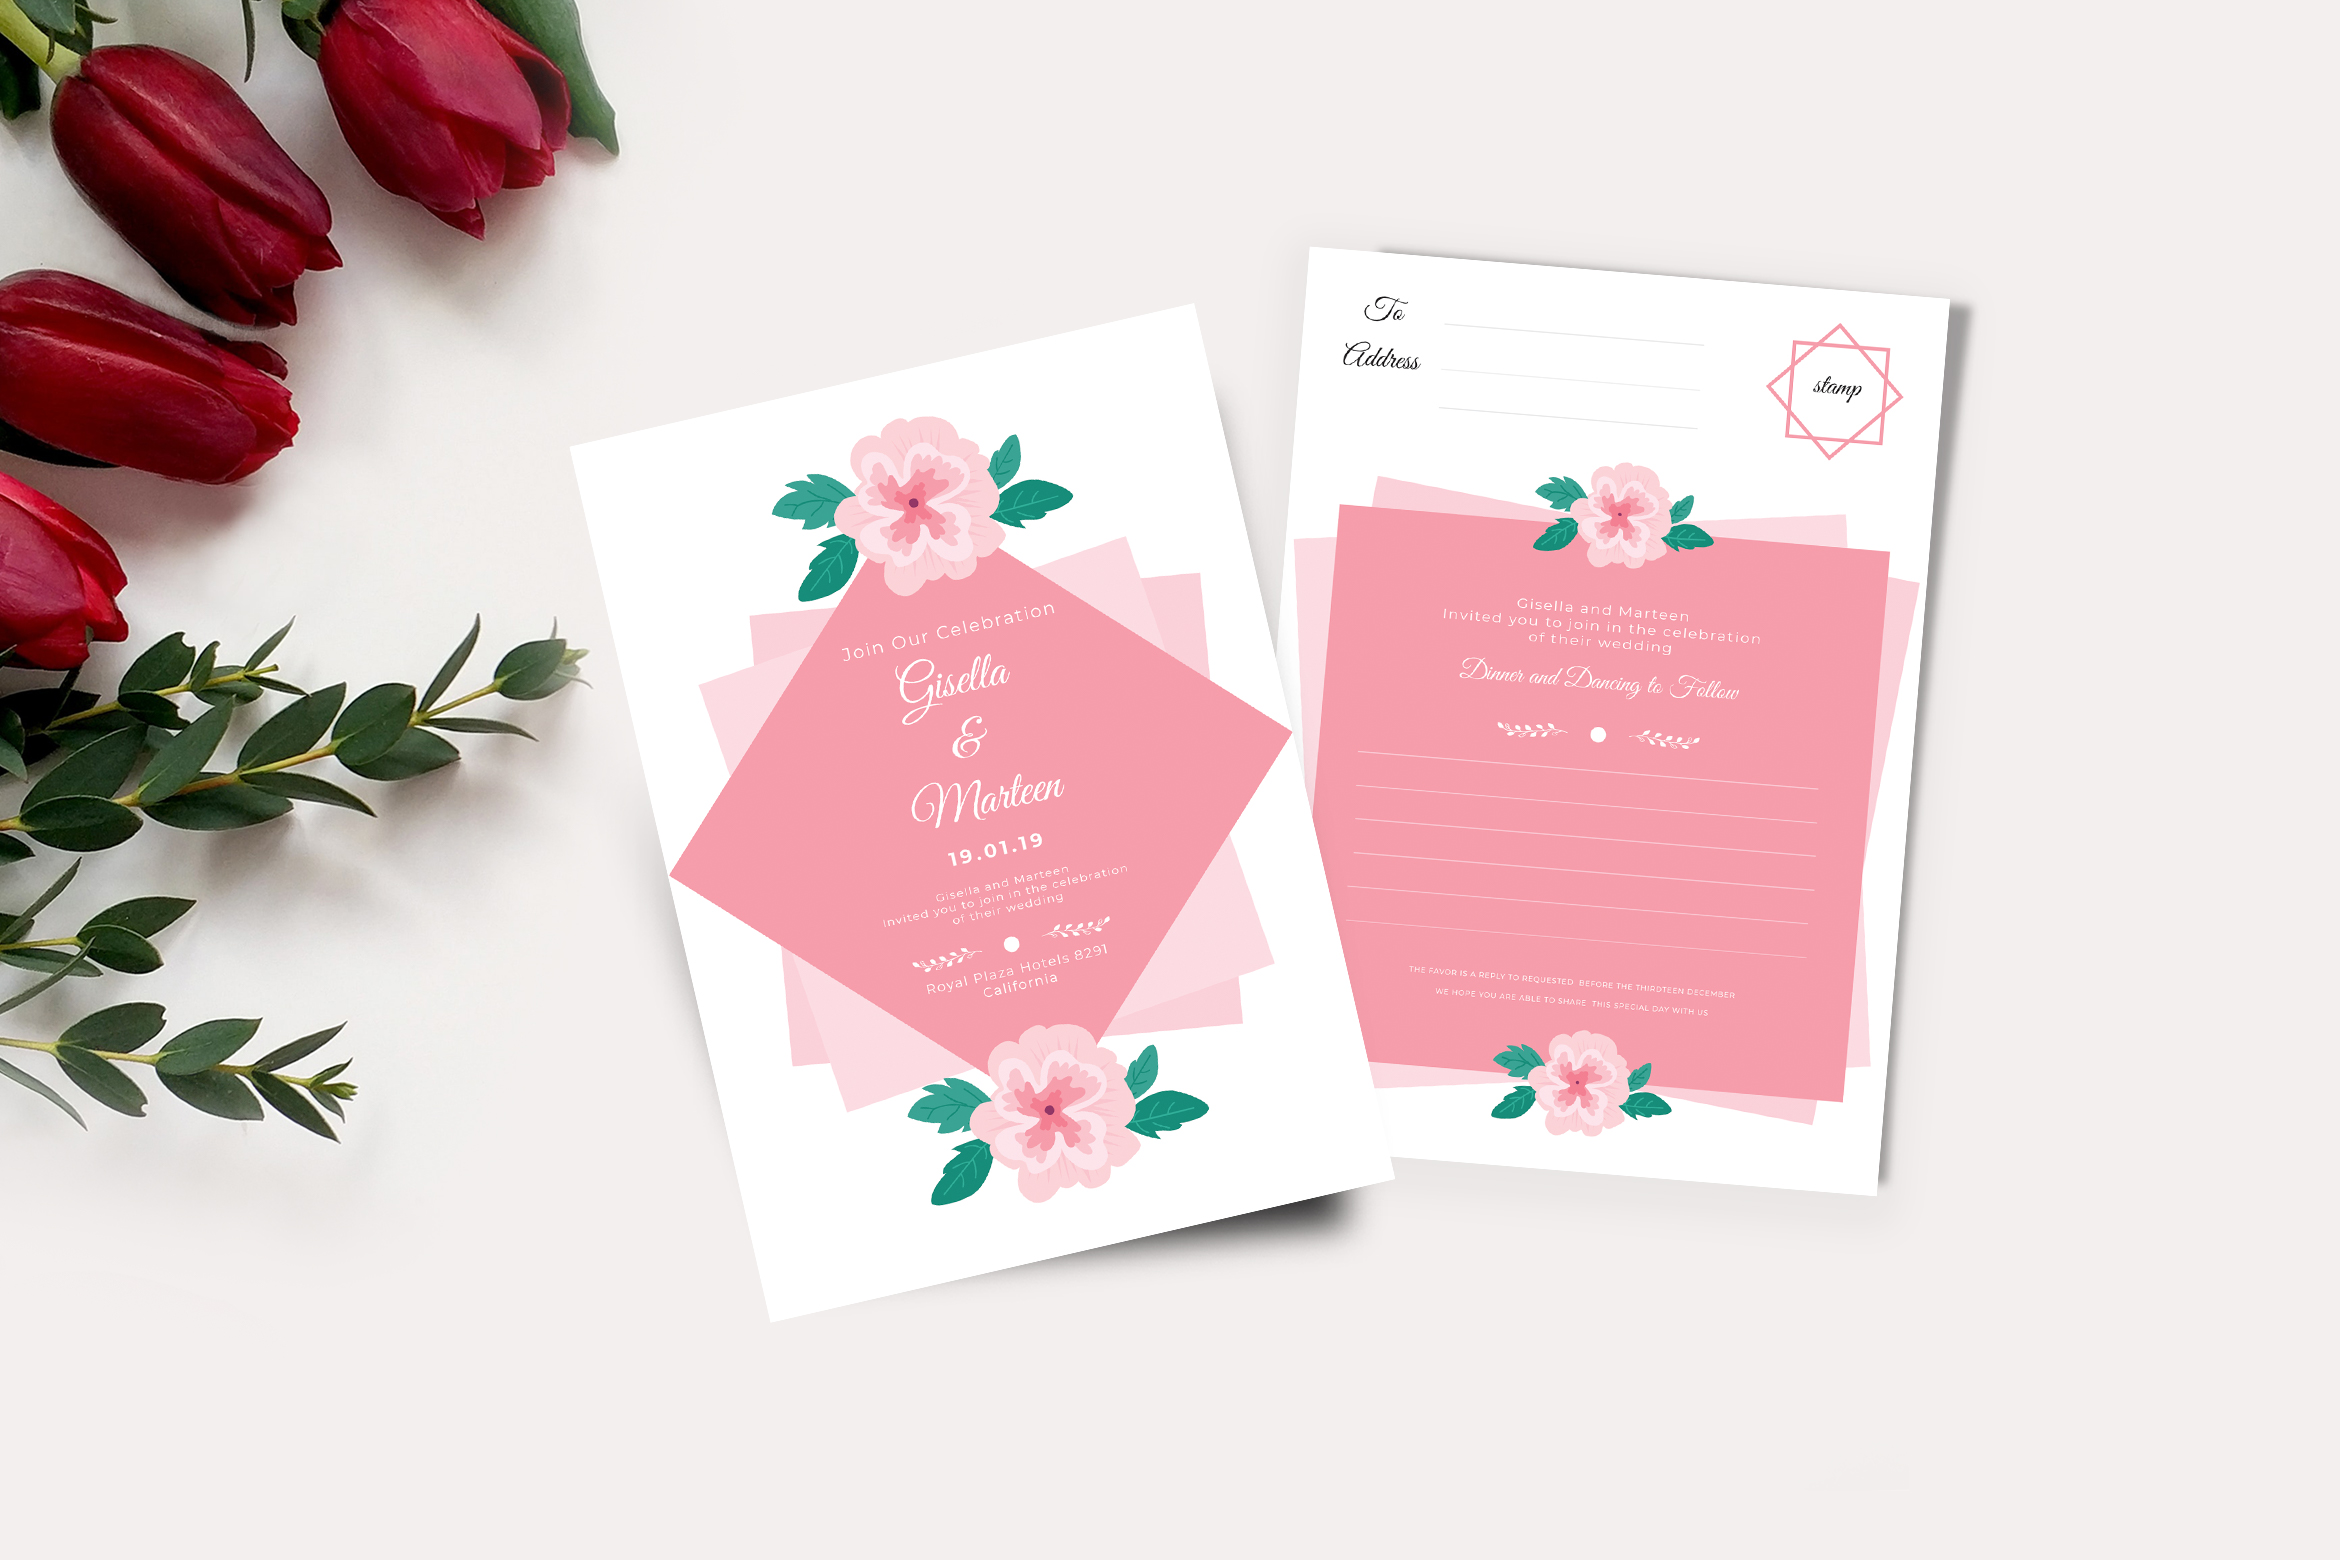 Download Free Wedding Invitation And Rsvp Graphic By Tmint Creative Fabrica for Cricut Explore, Silhouette and other cutting machines.